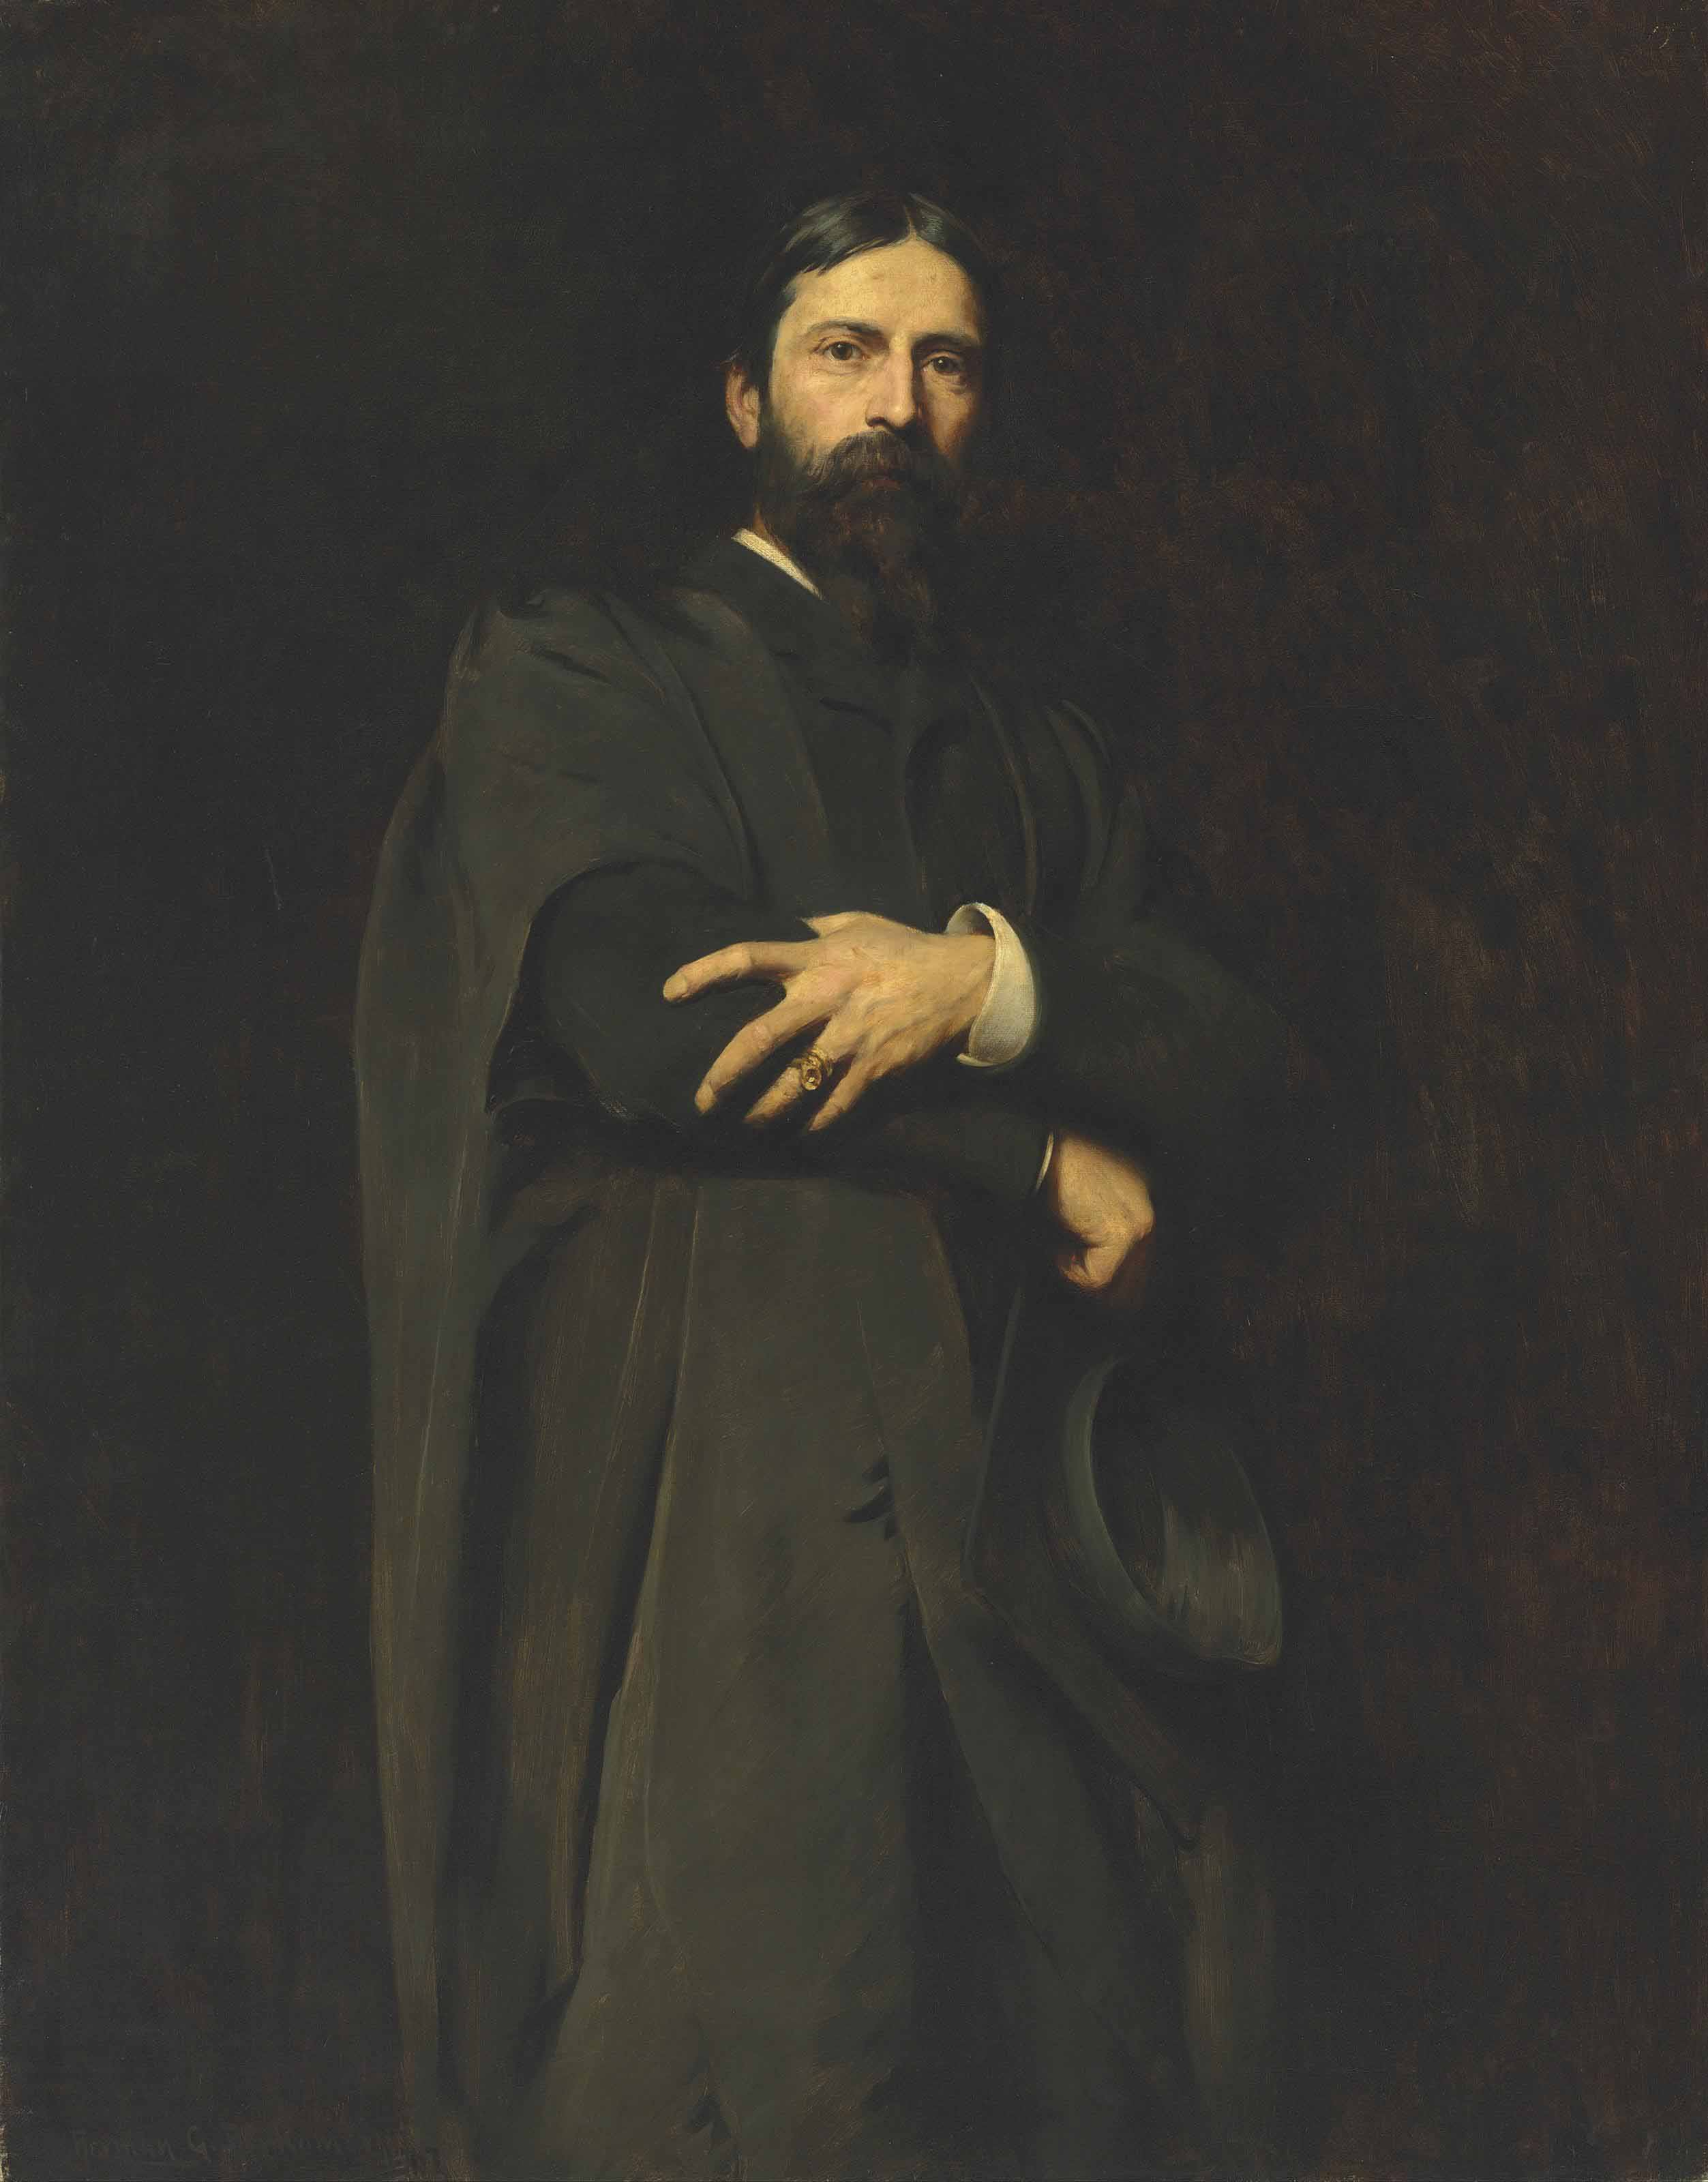 Sir Hubert von Herkomer, R.A., three-quarter-length, standing, wearing the Slade Professor's gown and holding a mortar-board